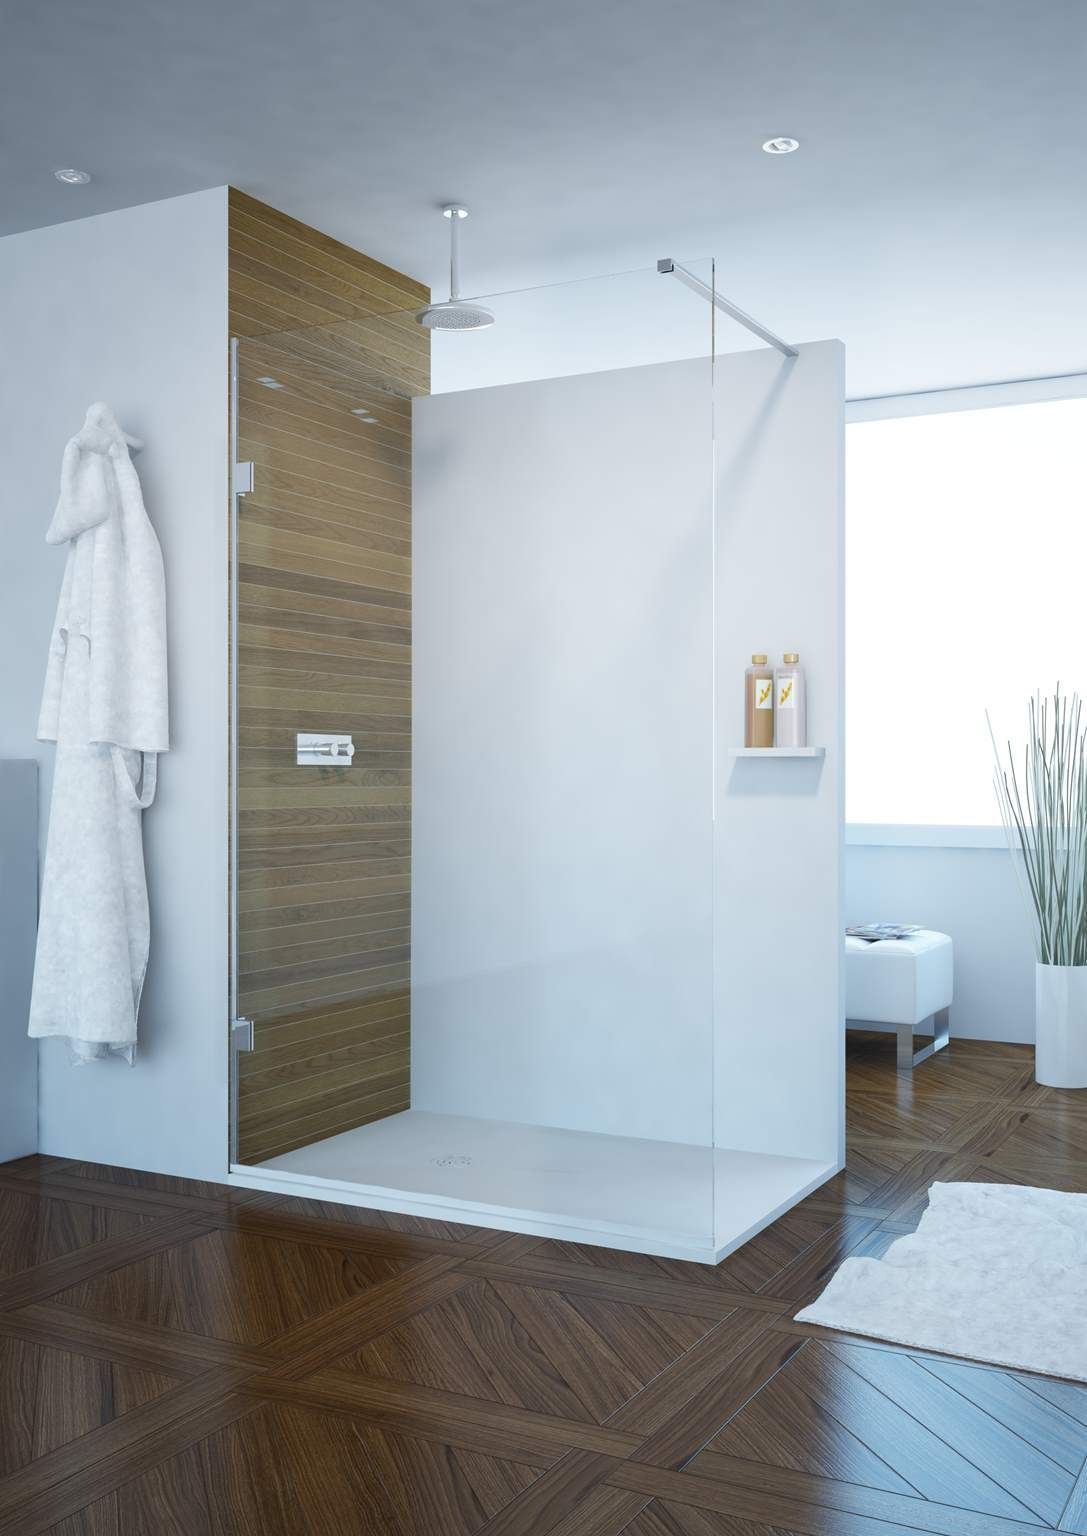 Neon 01 - Standard | En-suite | Pinterest | Neon, Shower enclosure ...